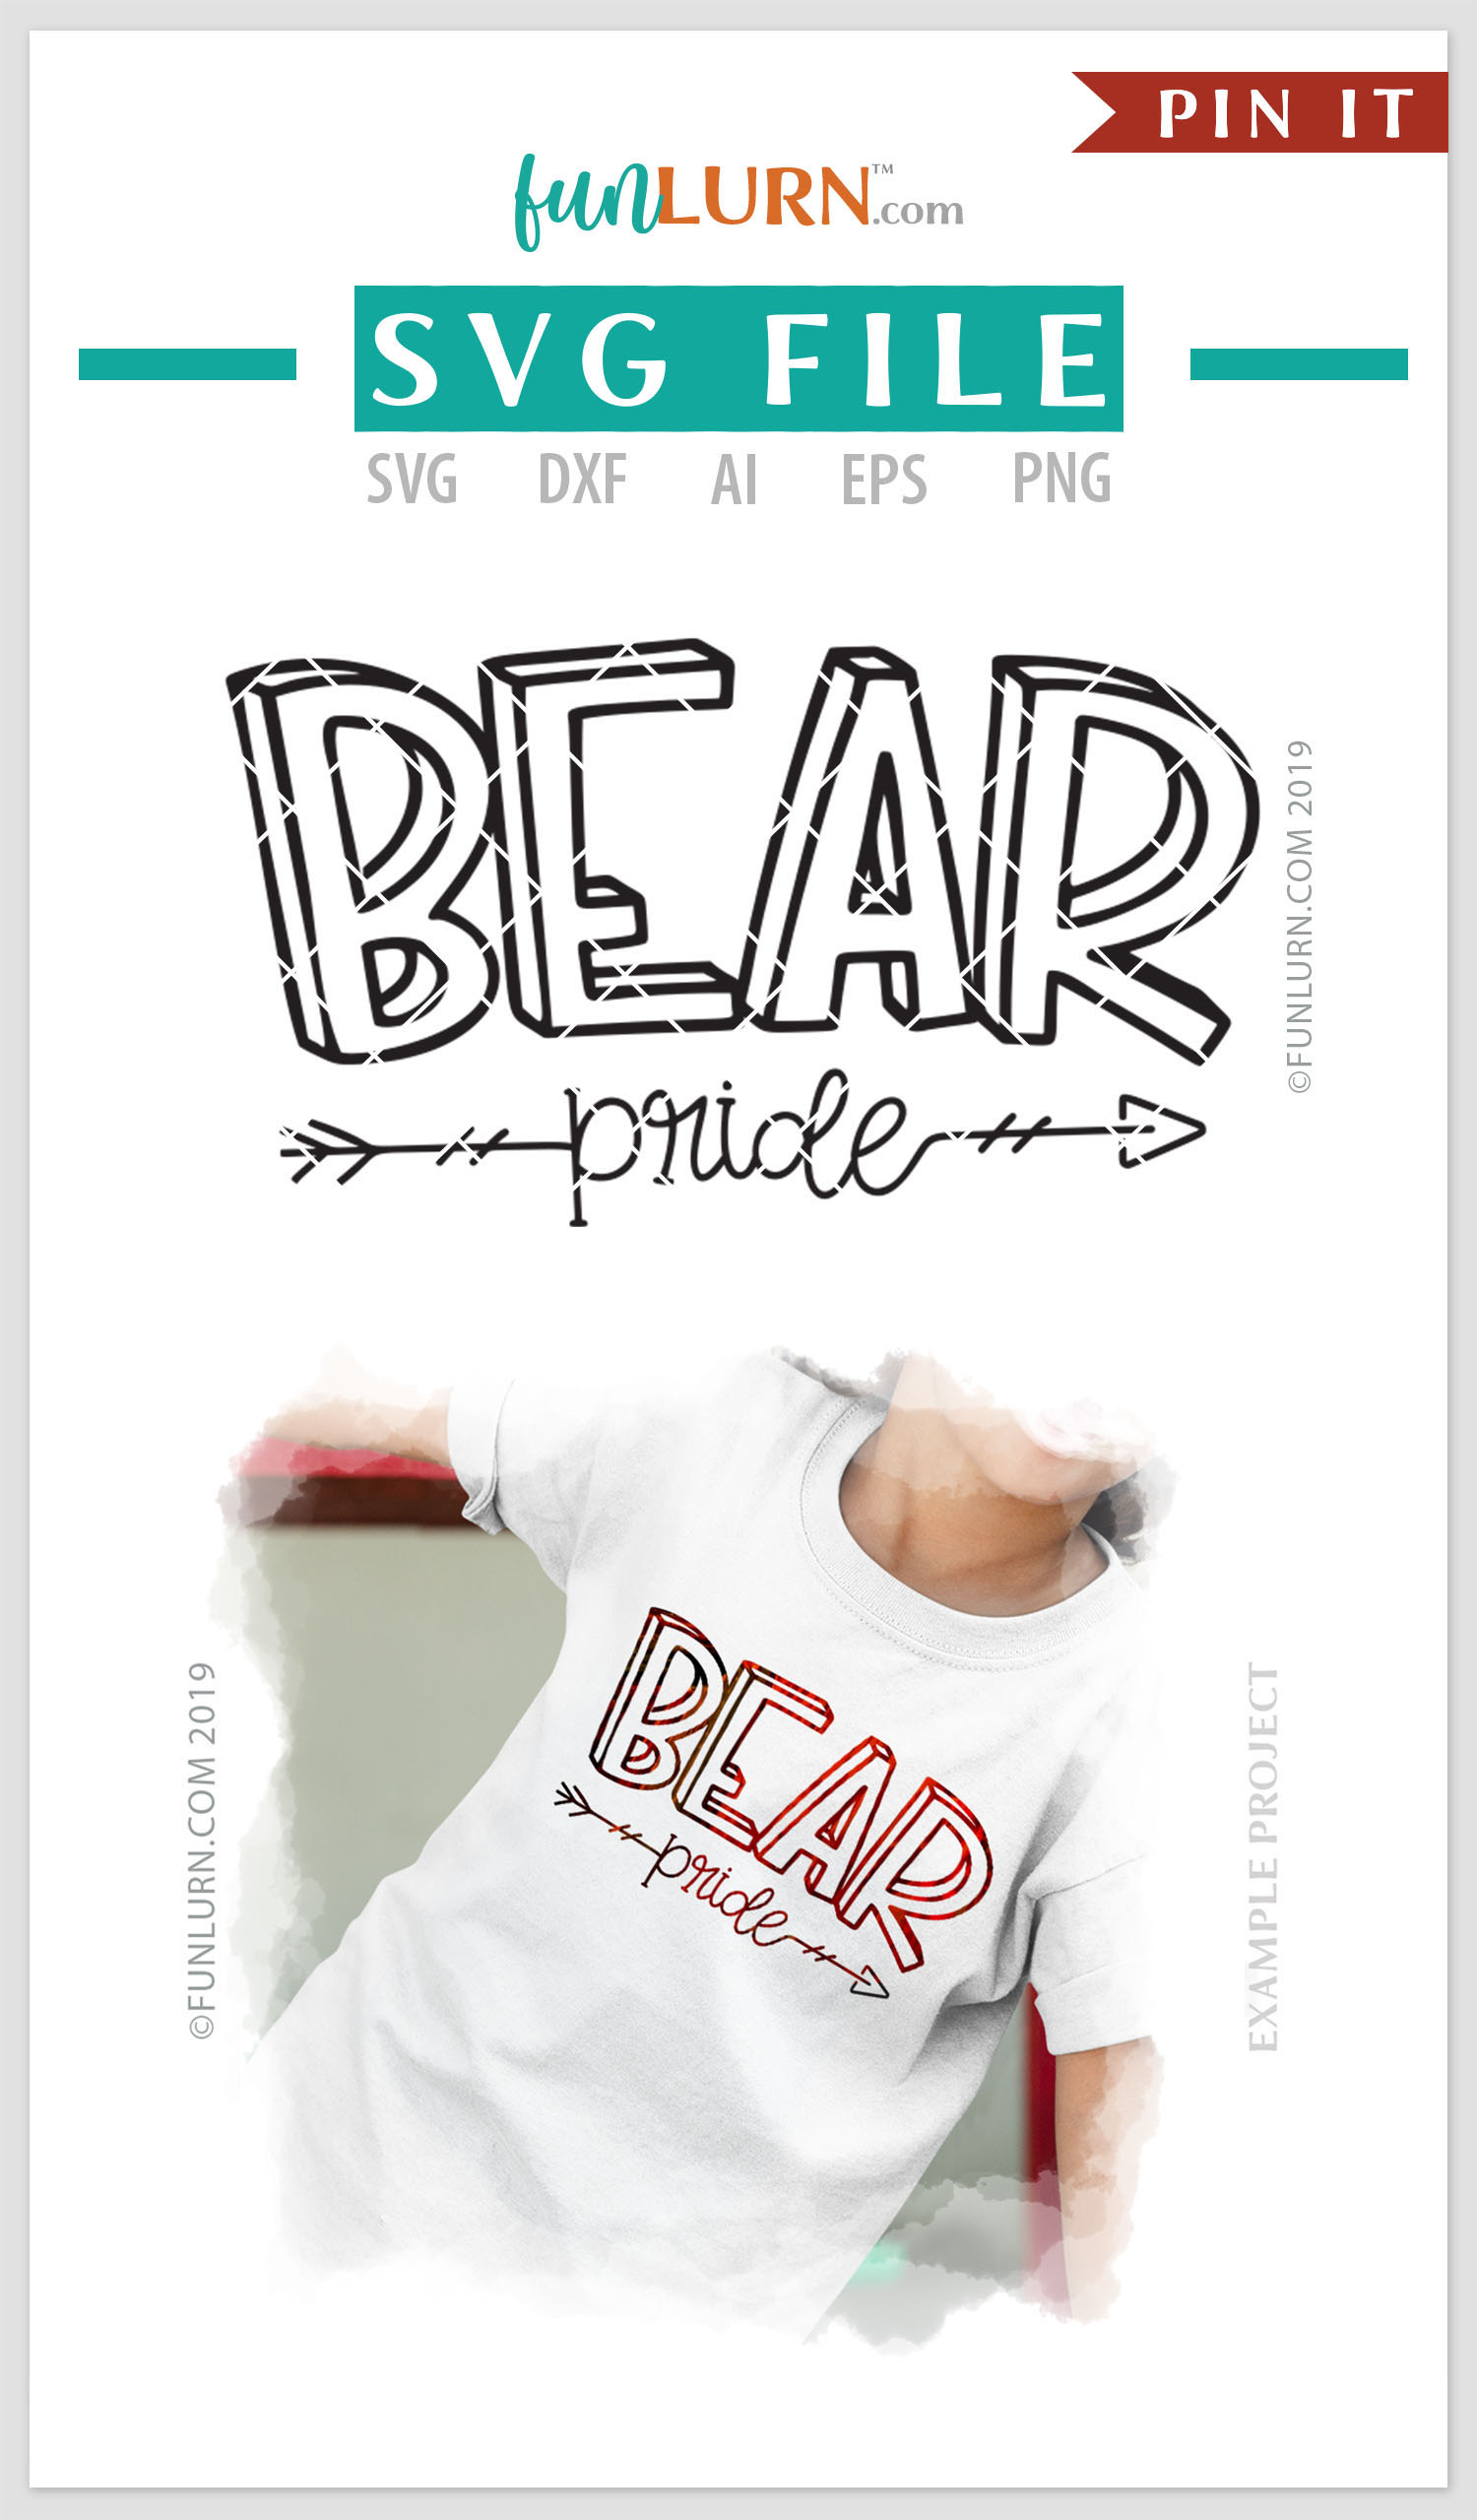 Bear Pride Team SVG Cut File example image 4